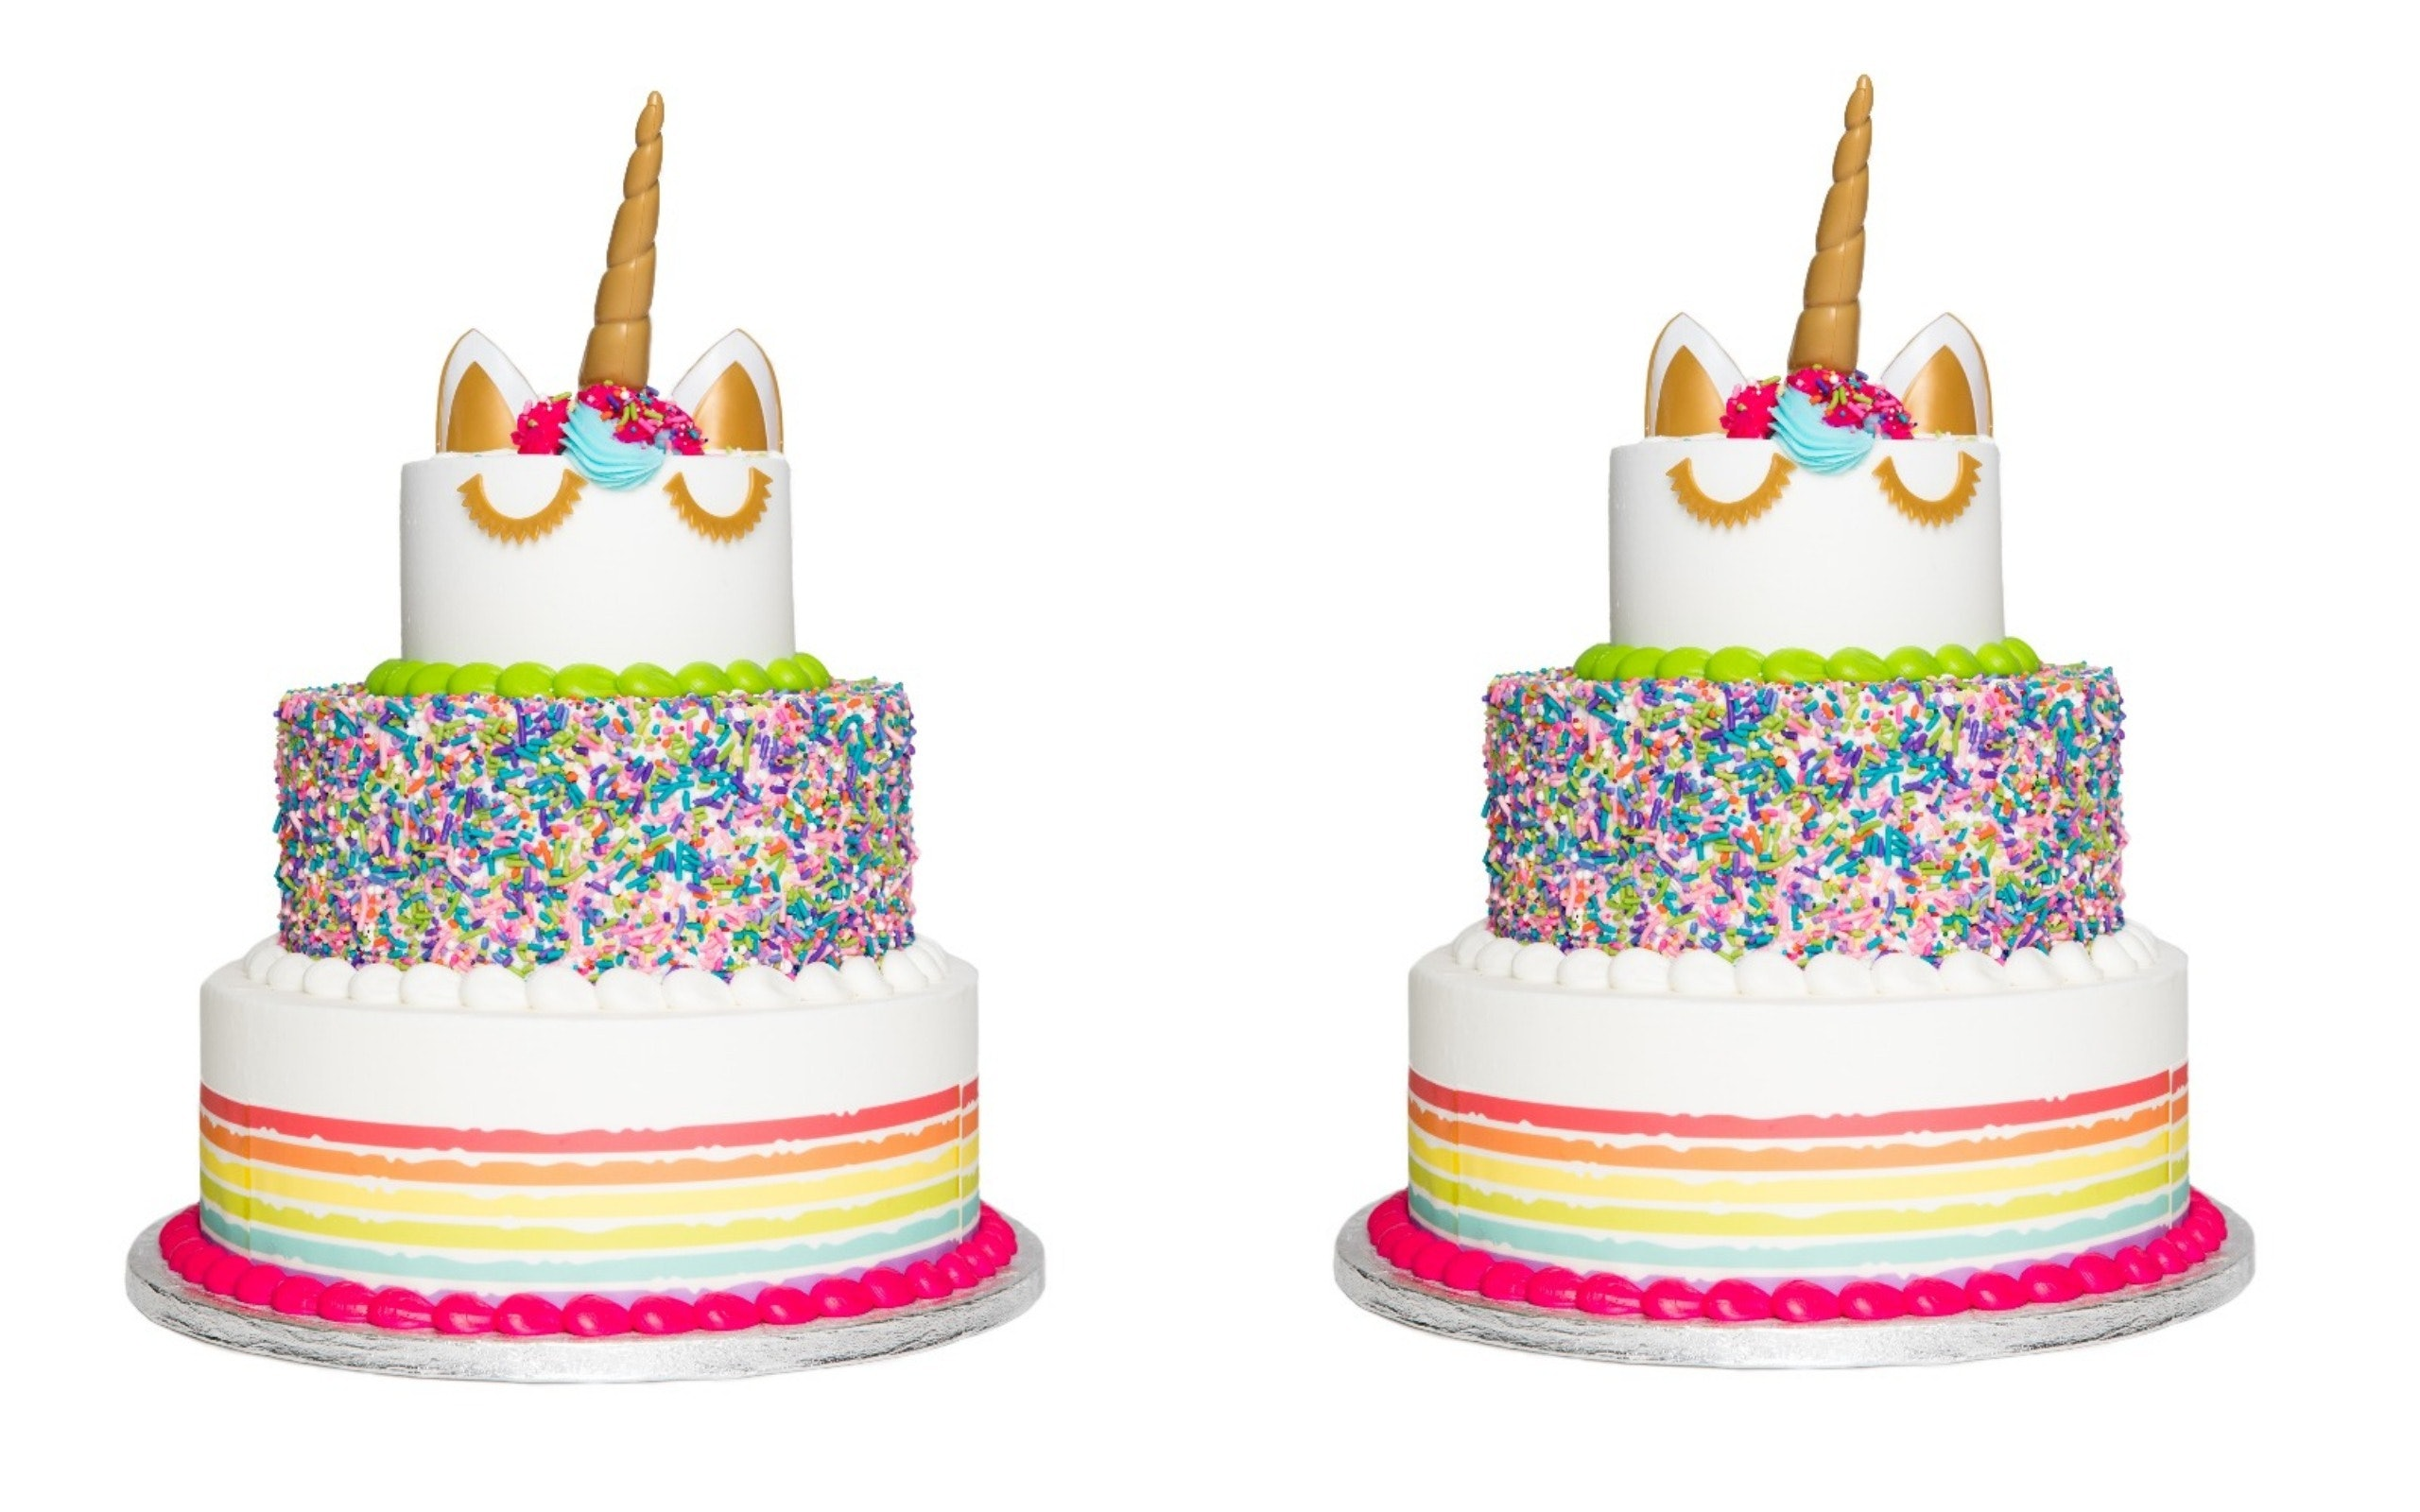 Prime This 3 Tier Unicorn Cake At Sams Club Costs Less Than 70 Feeds Funny Birthday Cards Online Inifofree Goldxyz